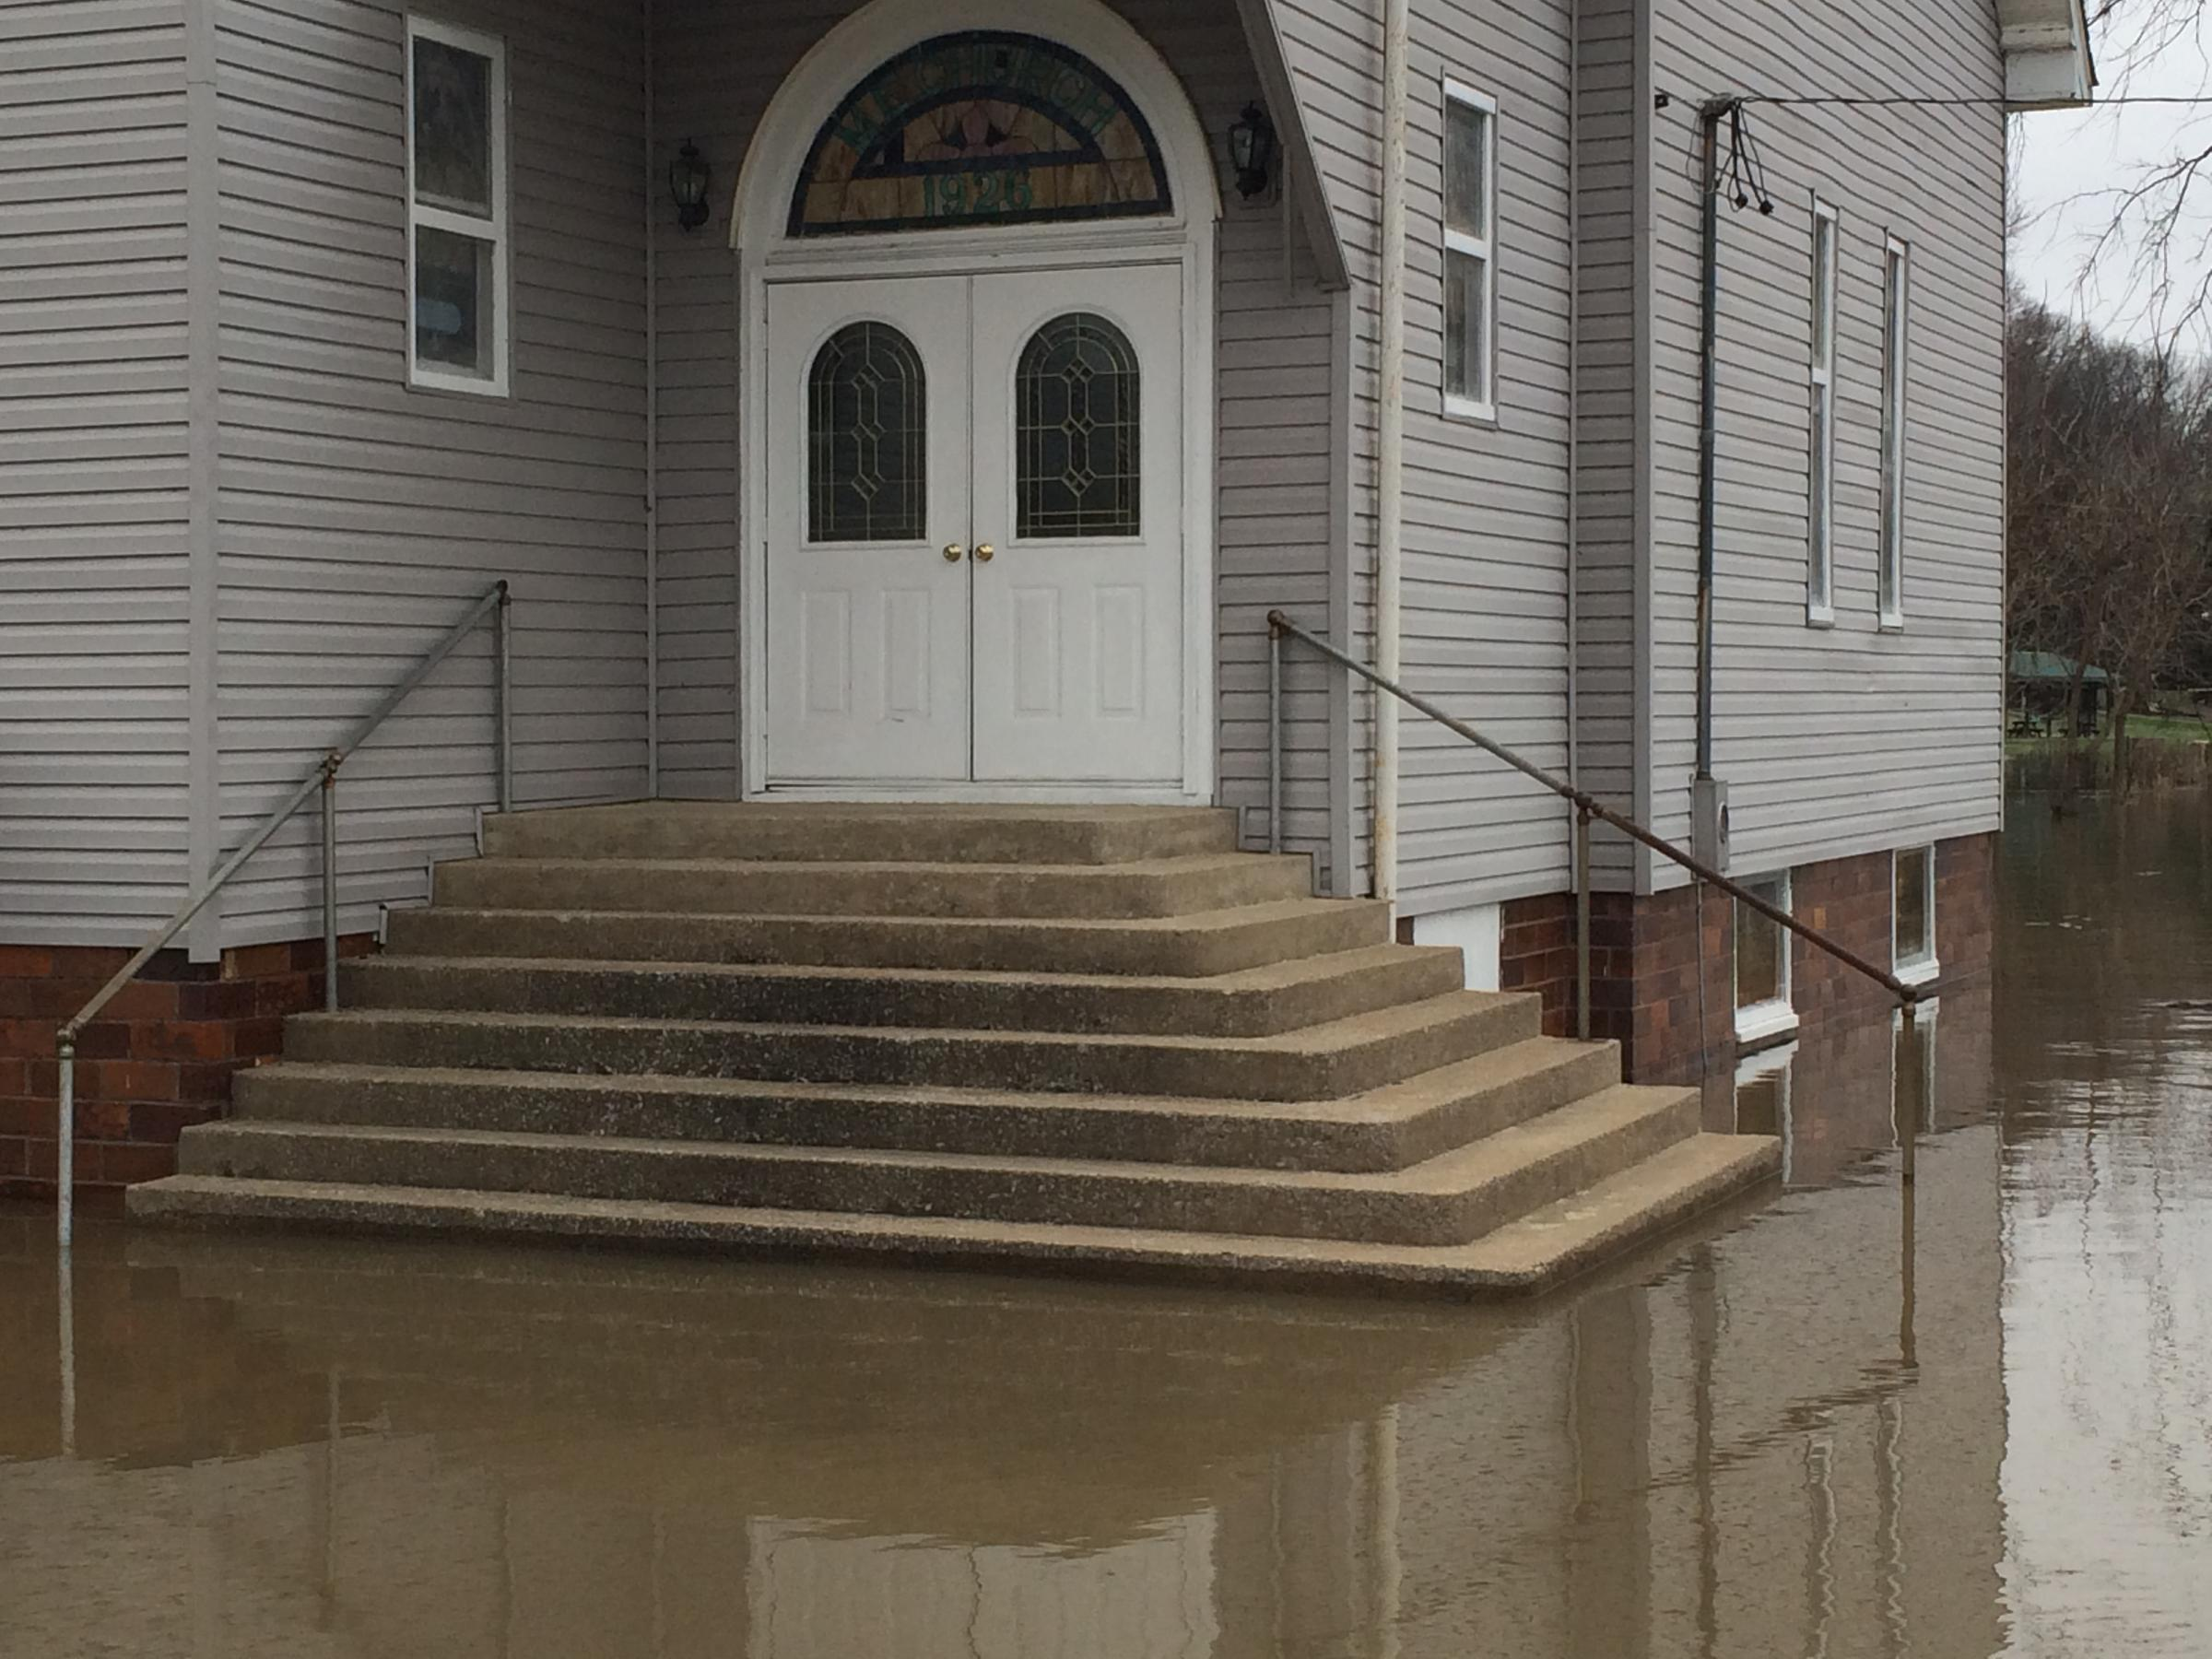 Illinois alexander county thebes - The Apostolic Church Of Thebes Illinois Stands As Flood Waters Fill Its Basement On Wednesday Dec 30 2015